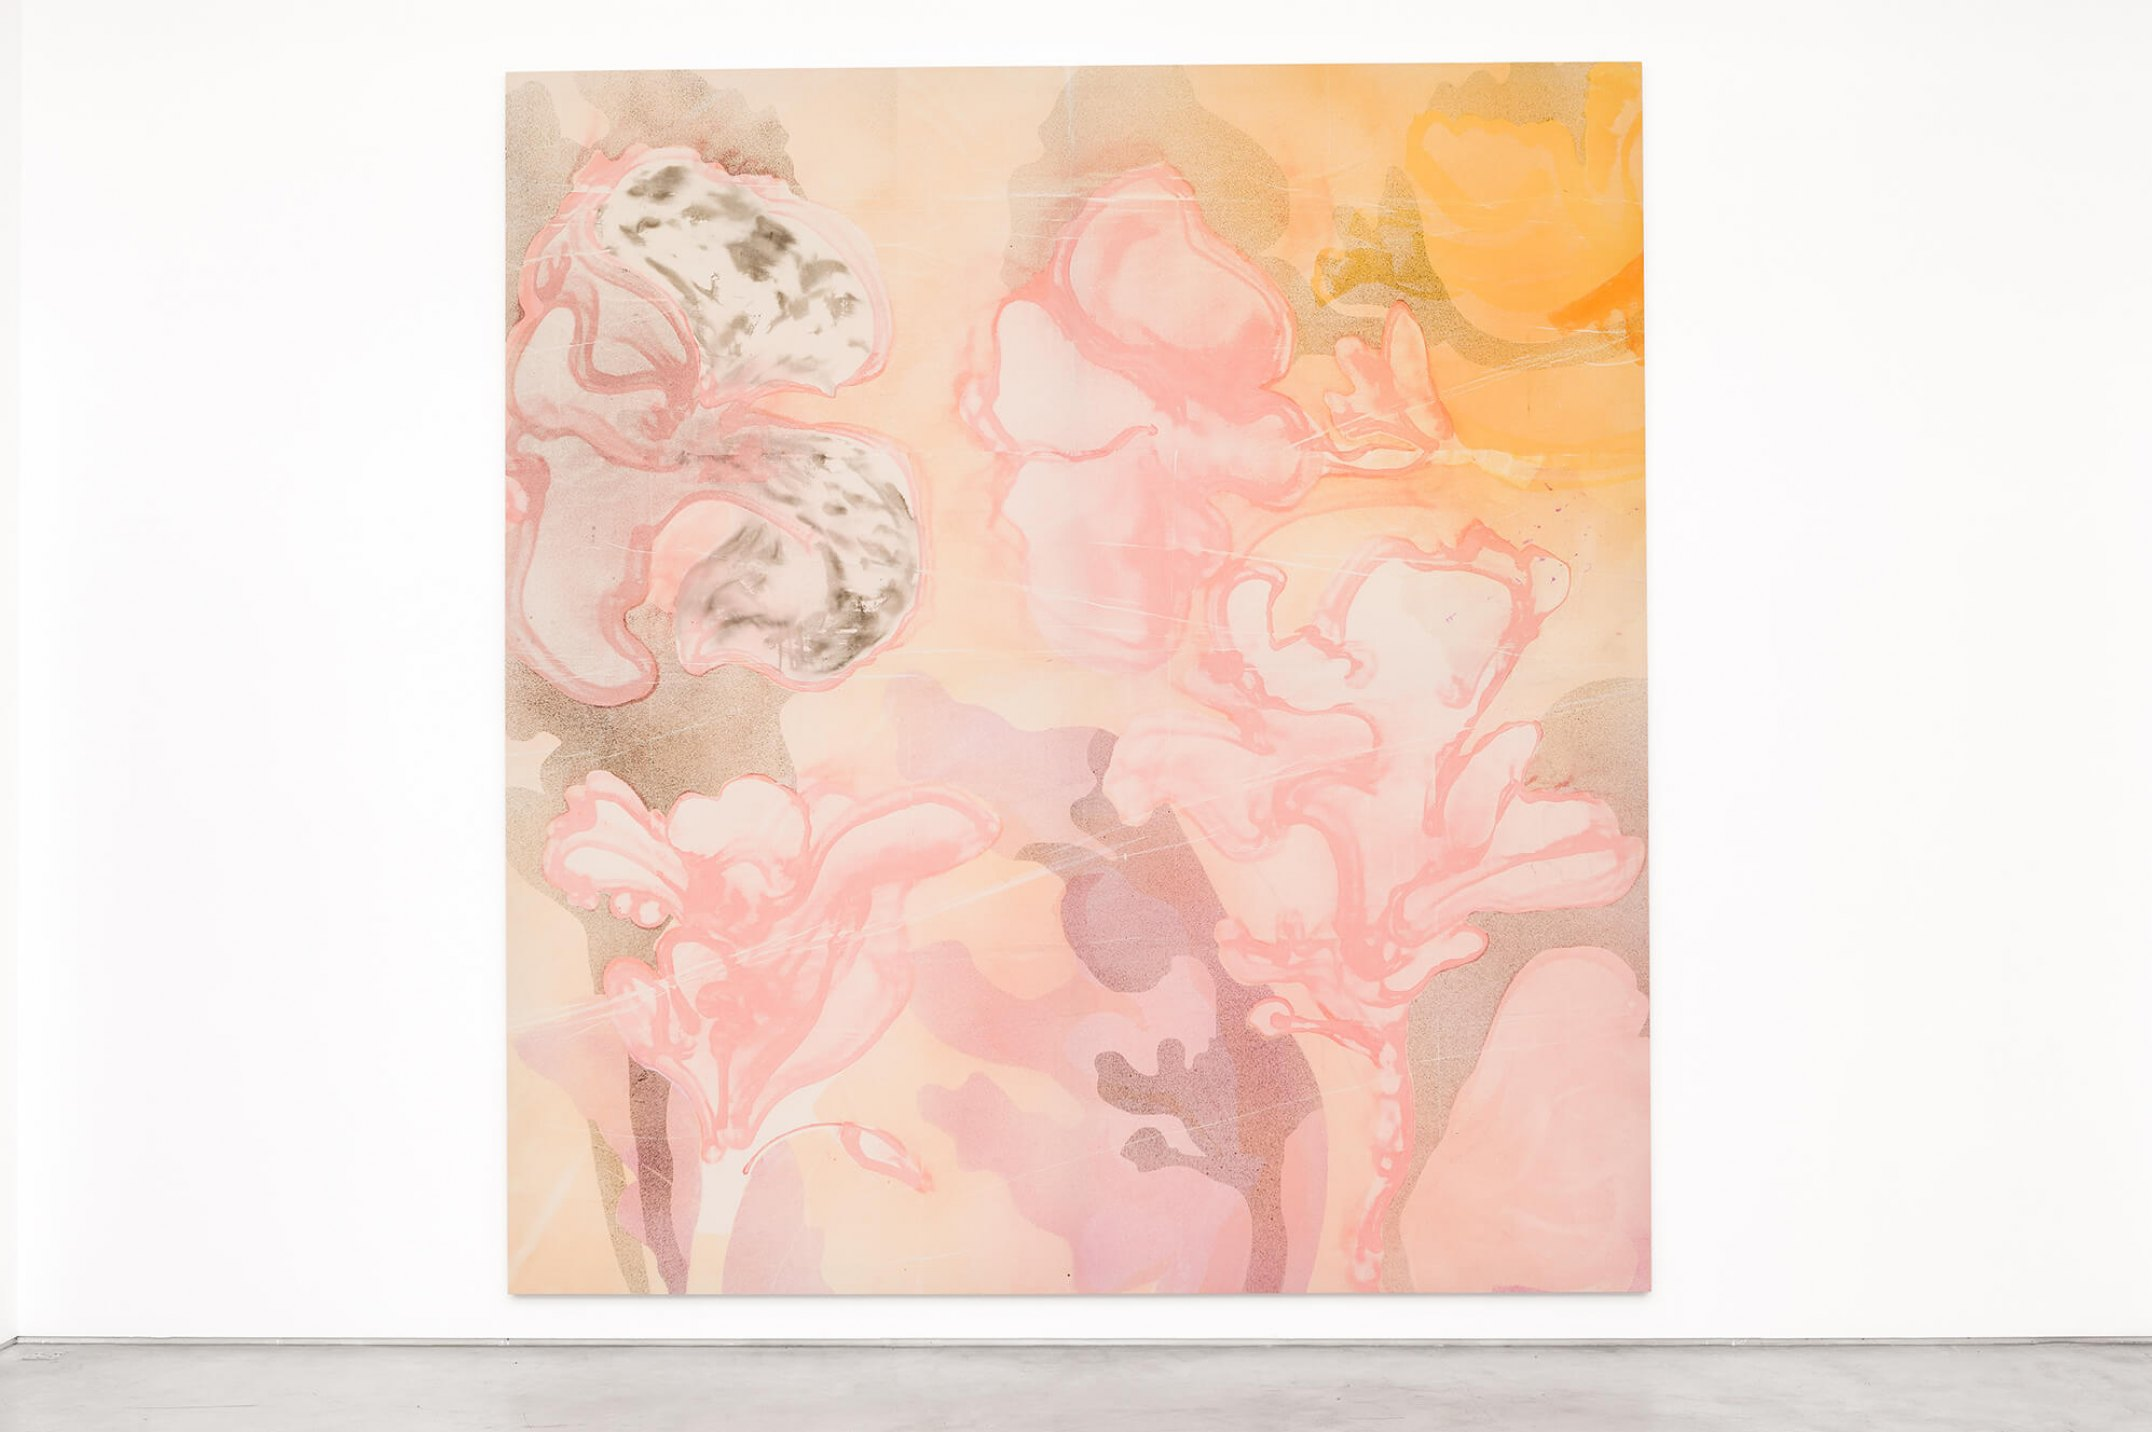 Matthew Lutz-Kinoy, <em>Pink opening, 2016, </em>acrylic and charcoal on canvas, 420 × 390 × 4,5 cm - Mendes Wood DM